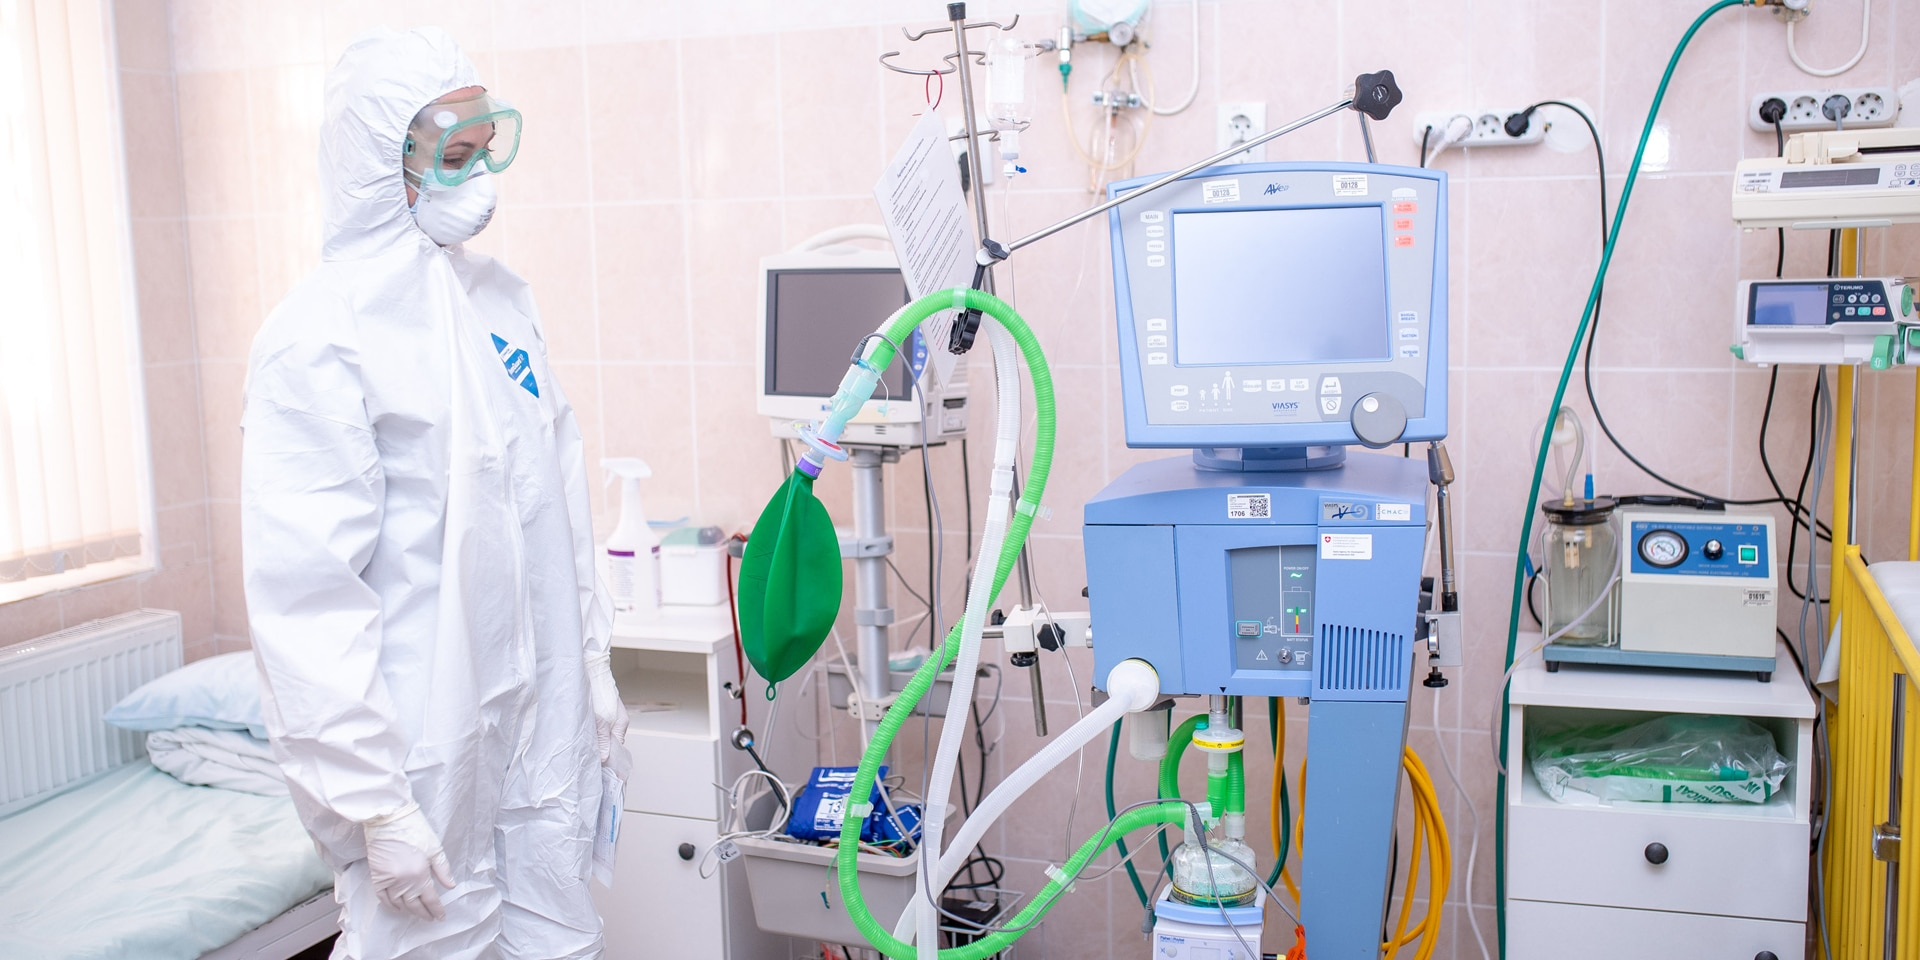 A woman in a hospital room wearing a protective suit, goggles and mask, standing next to hospital equipment.